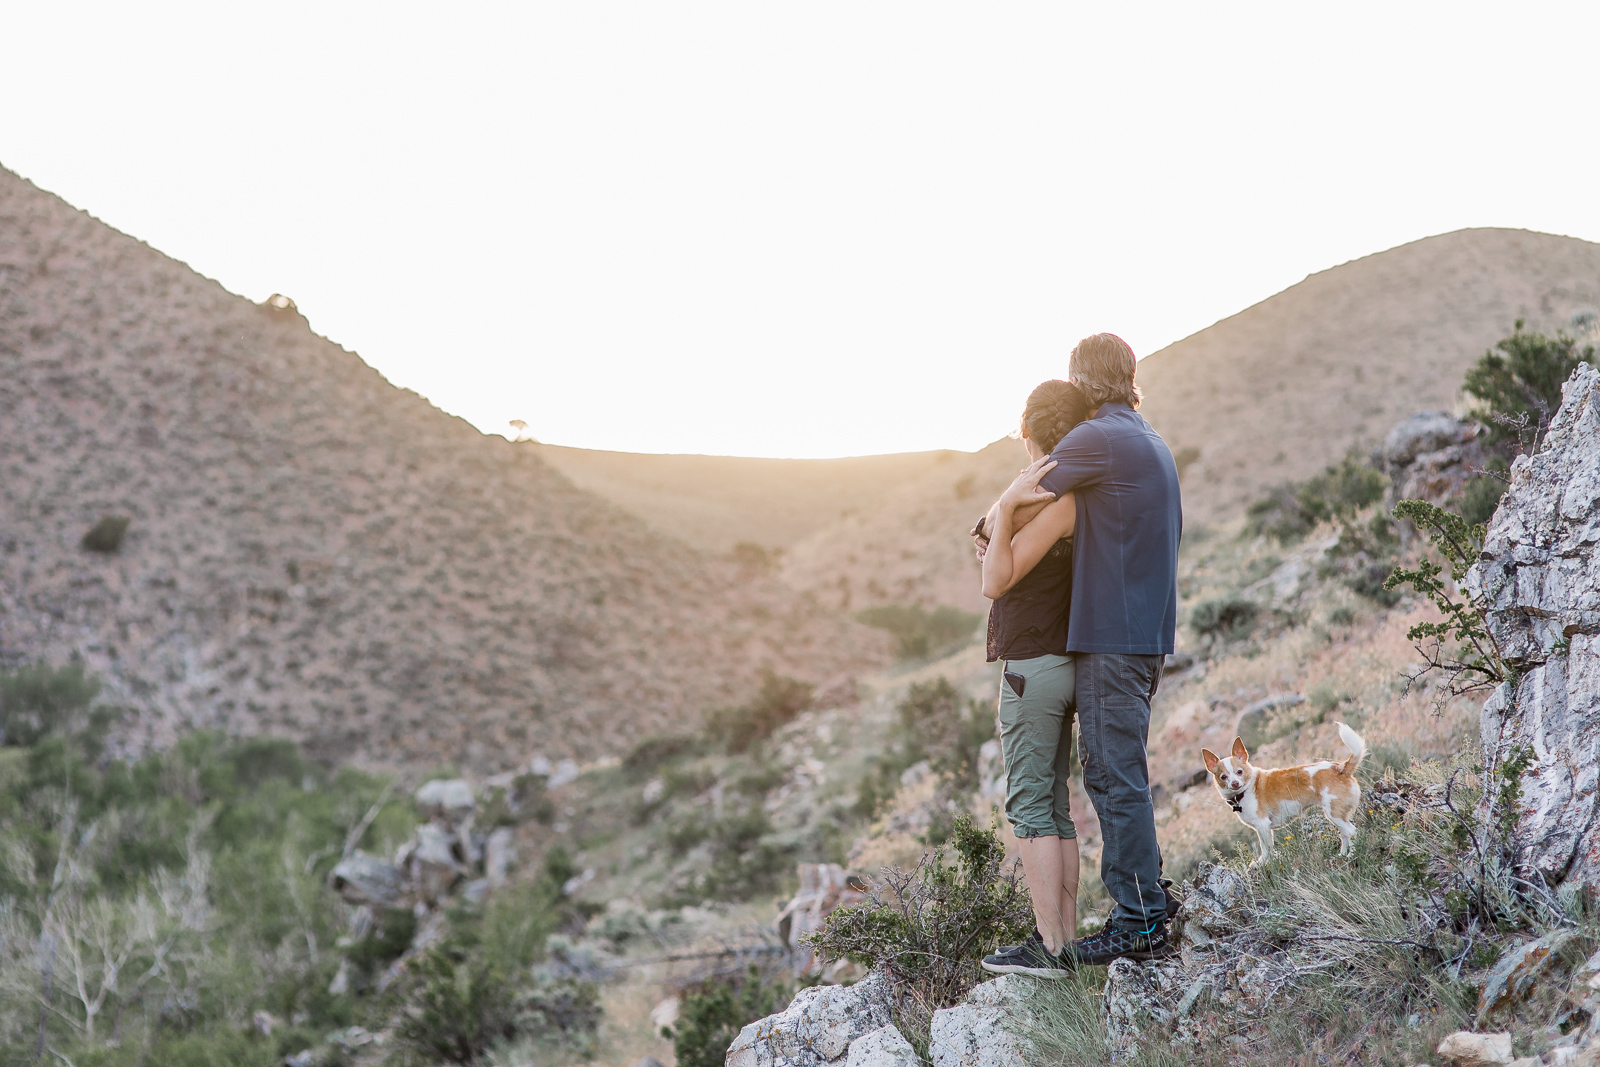 Engagement photography in Wyoming by Laramie based photographer, Encampment Wyoming